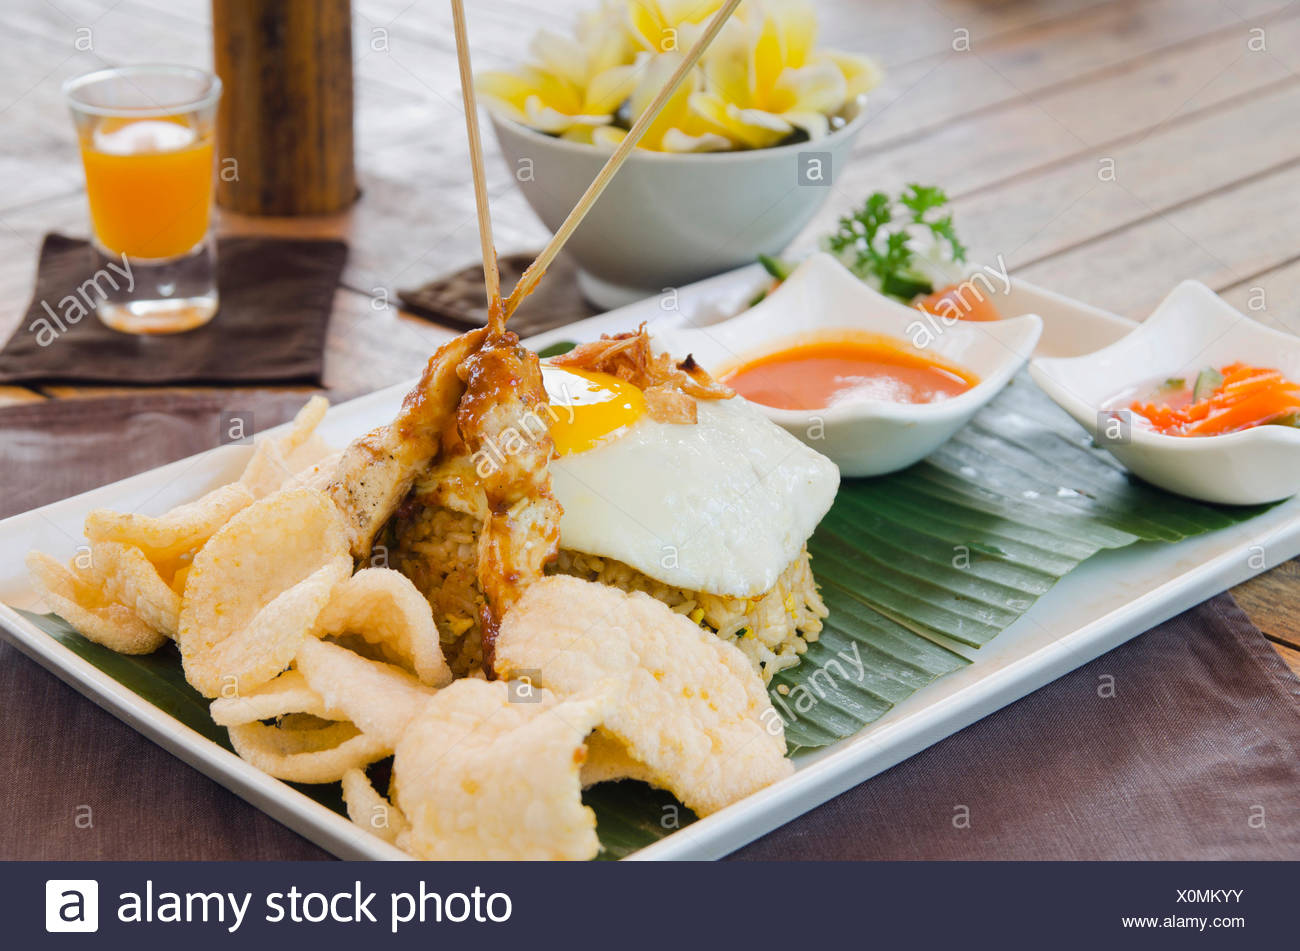 Cuisine Bali Nasi Goreng Indonesian Fried Rice Indonesian Cuisine At A